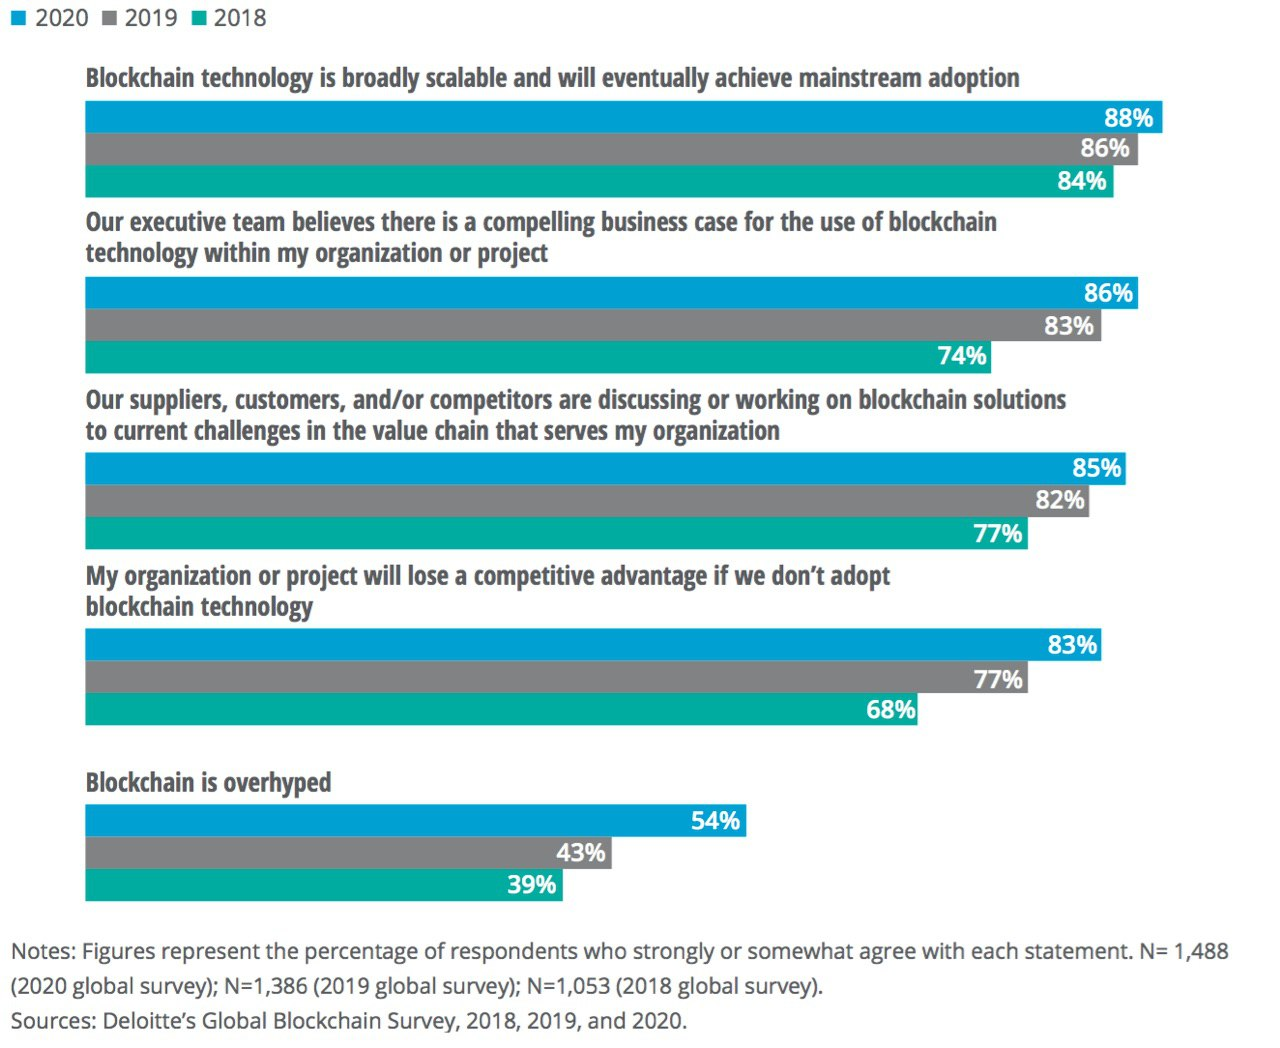 Deloitte: Over 1/3 Of Global Companies Are Integrating Blockchain